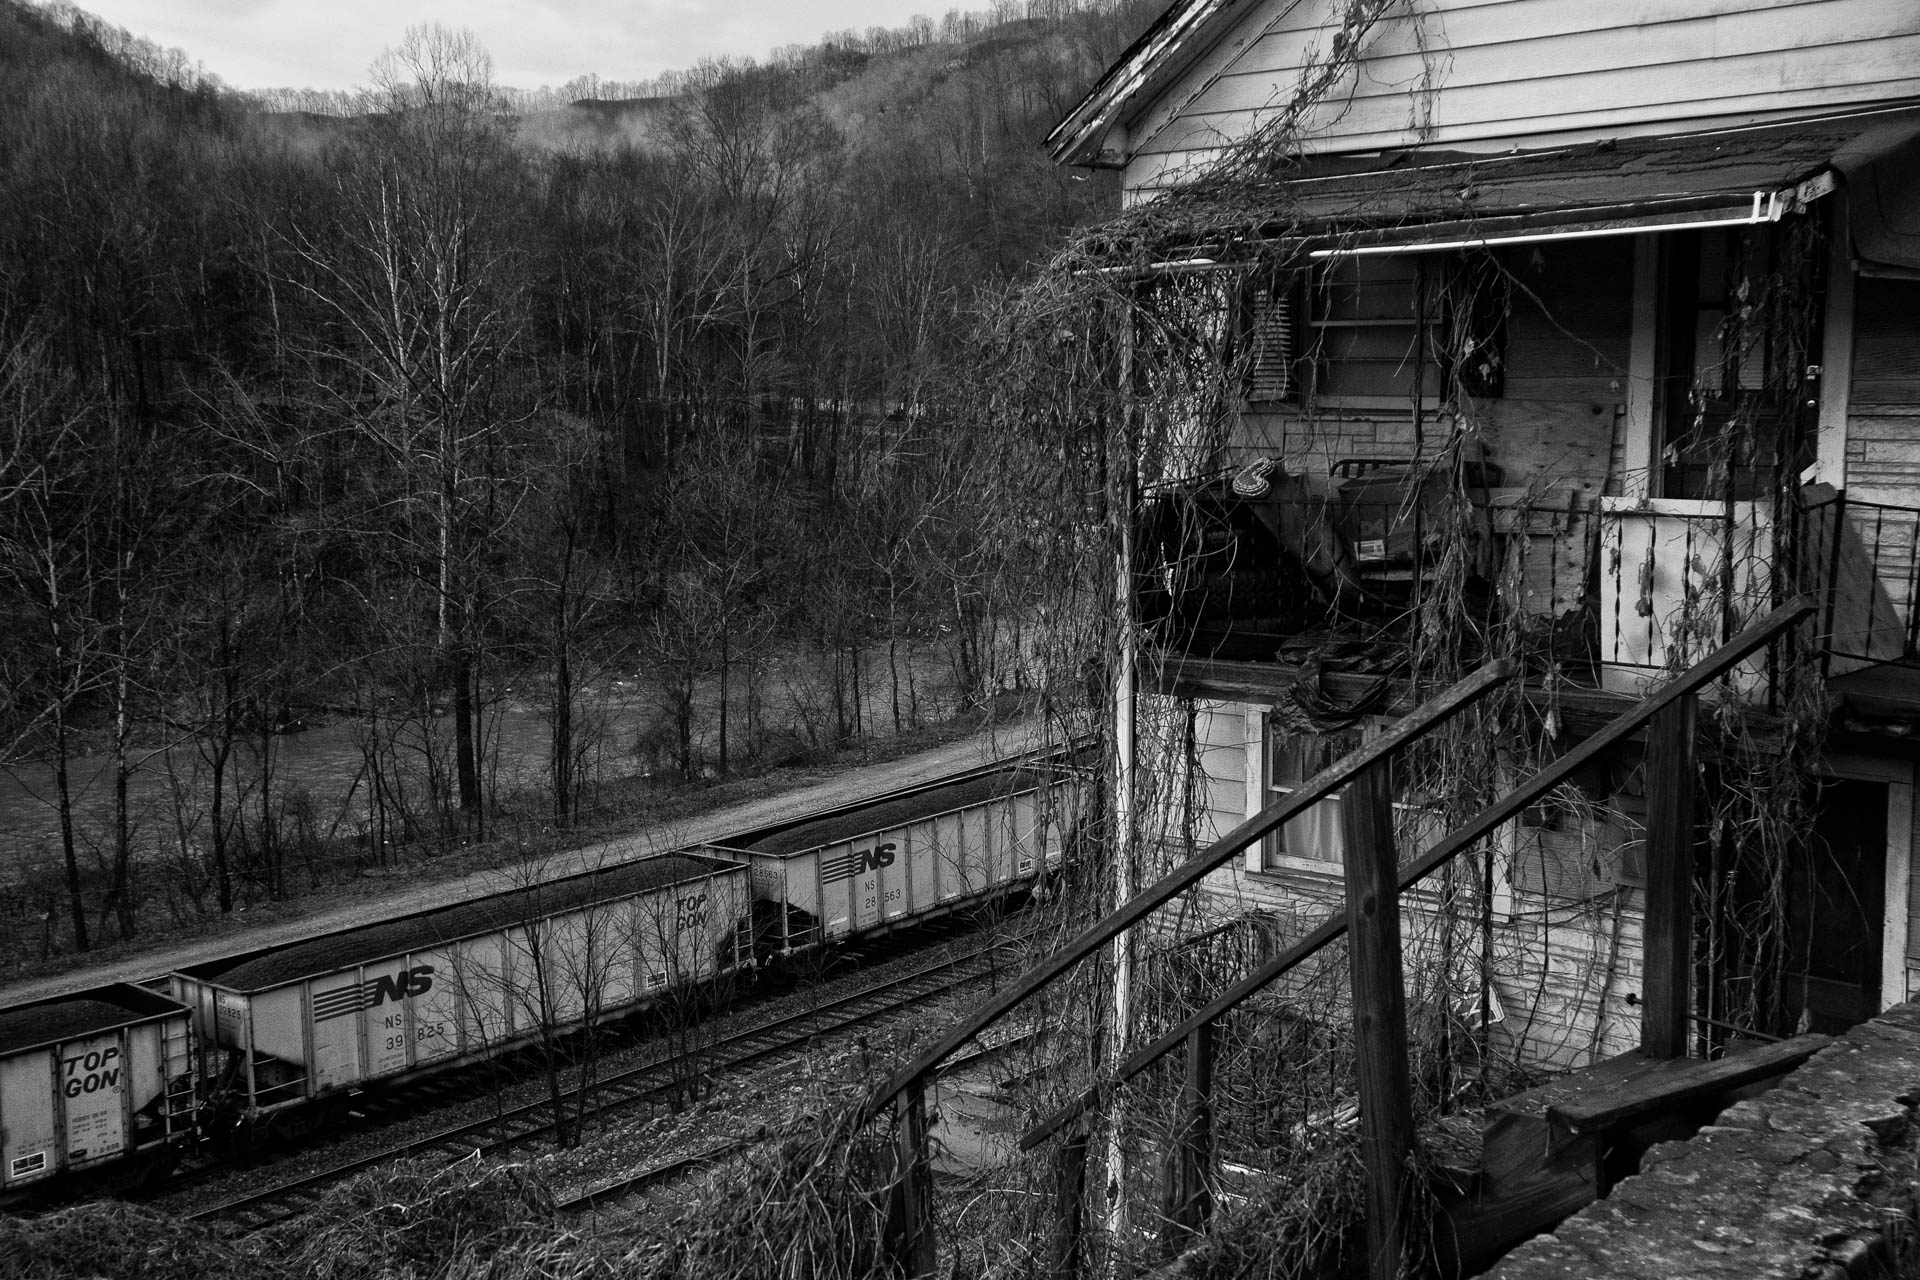 decaying-house-overlooking-railroad-yard-capels-wv-.JPG